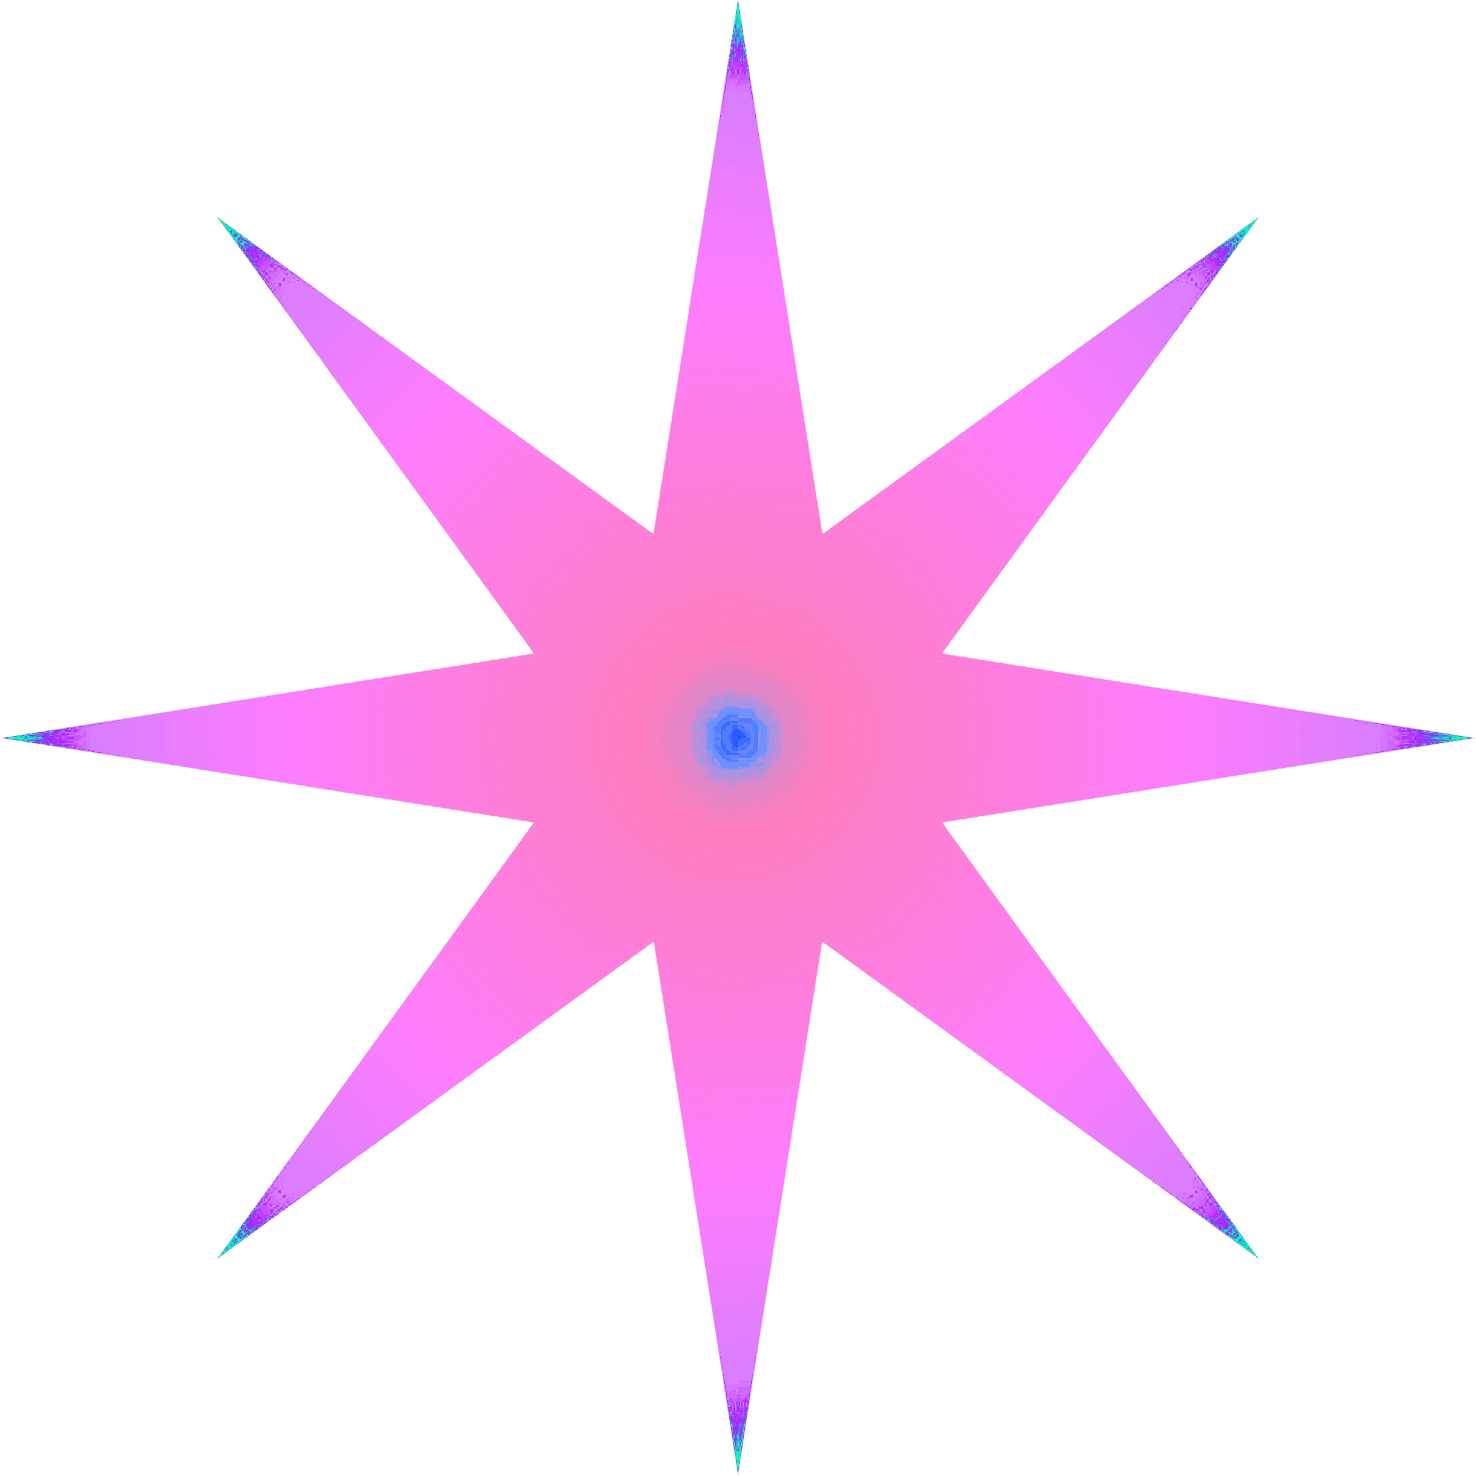 pink pointed star